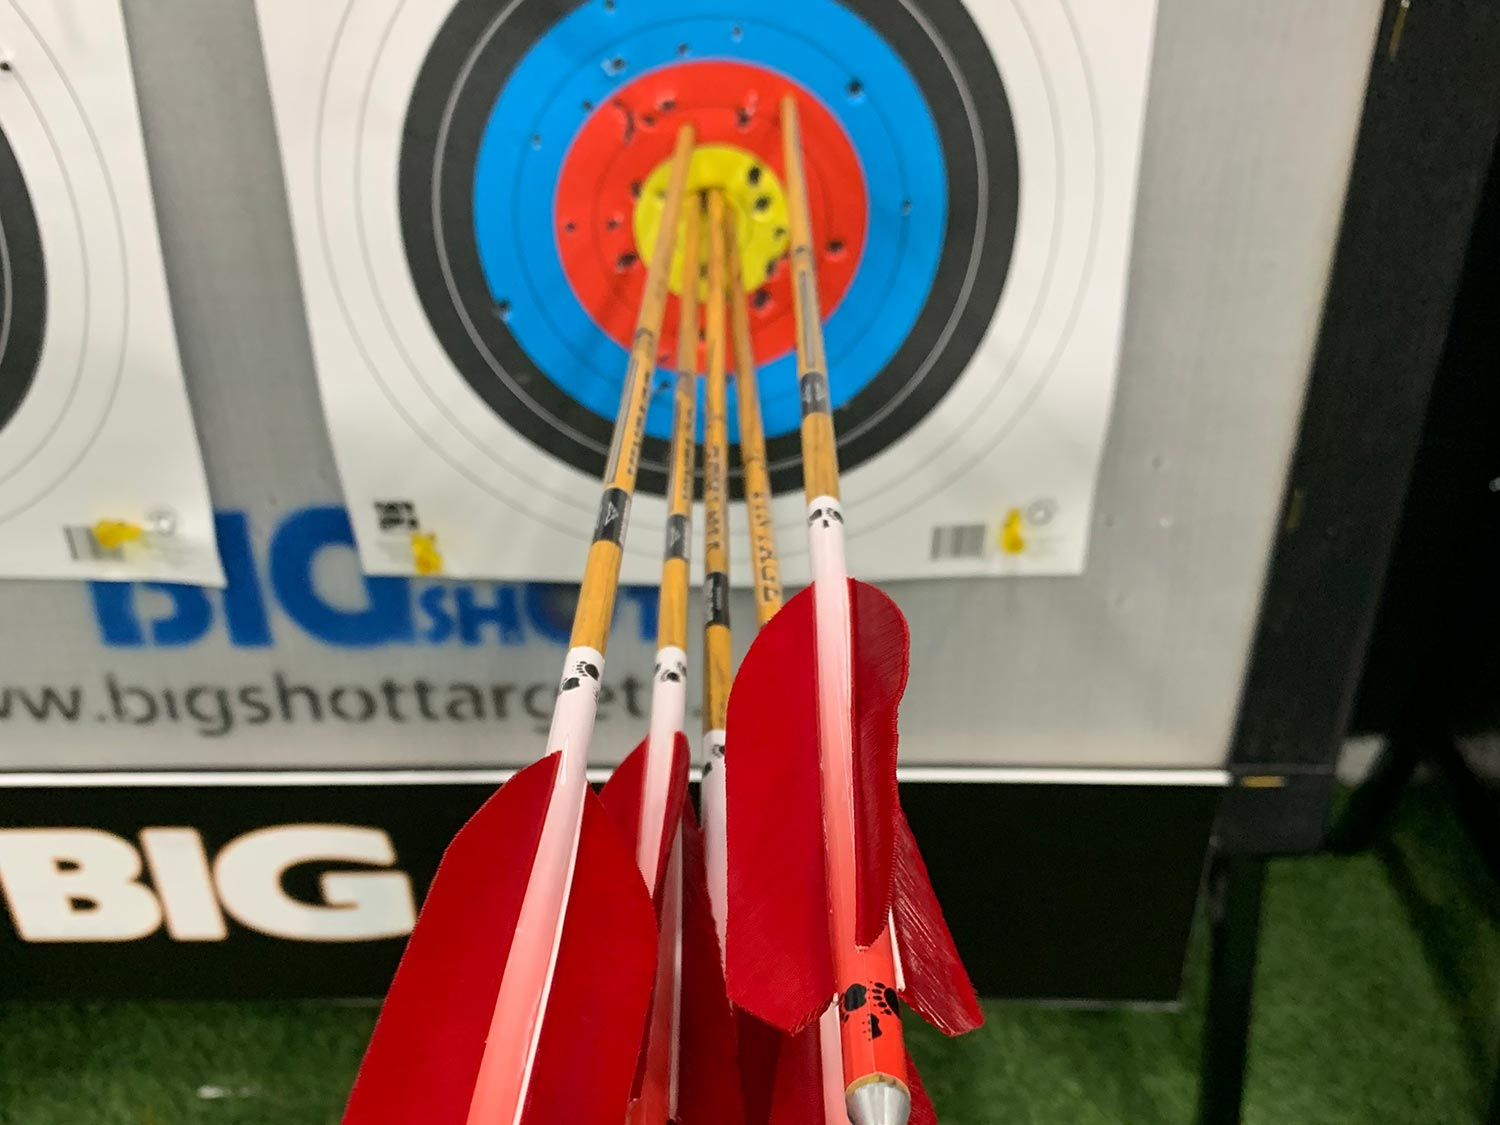 Archery competitions will make you a better bowhunter.